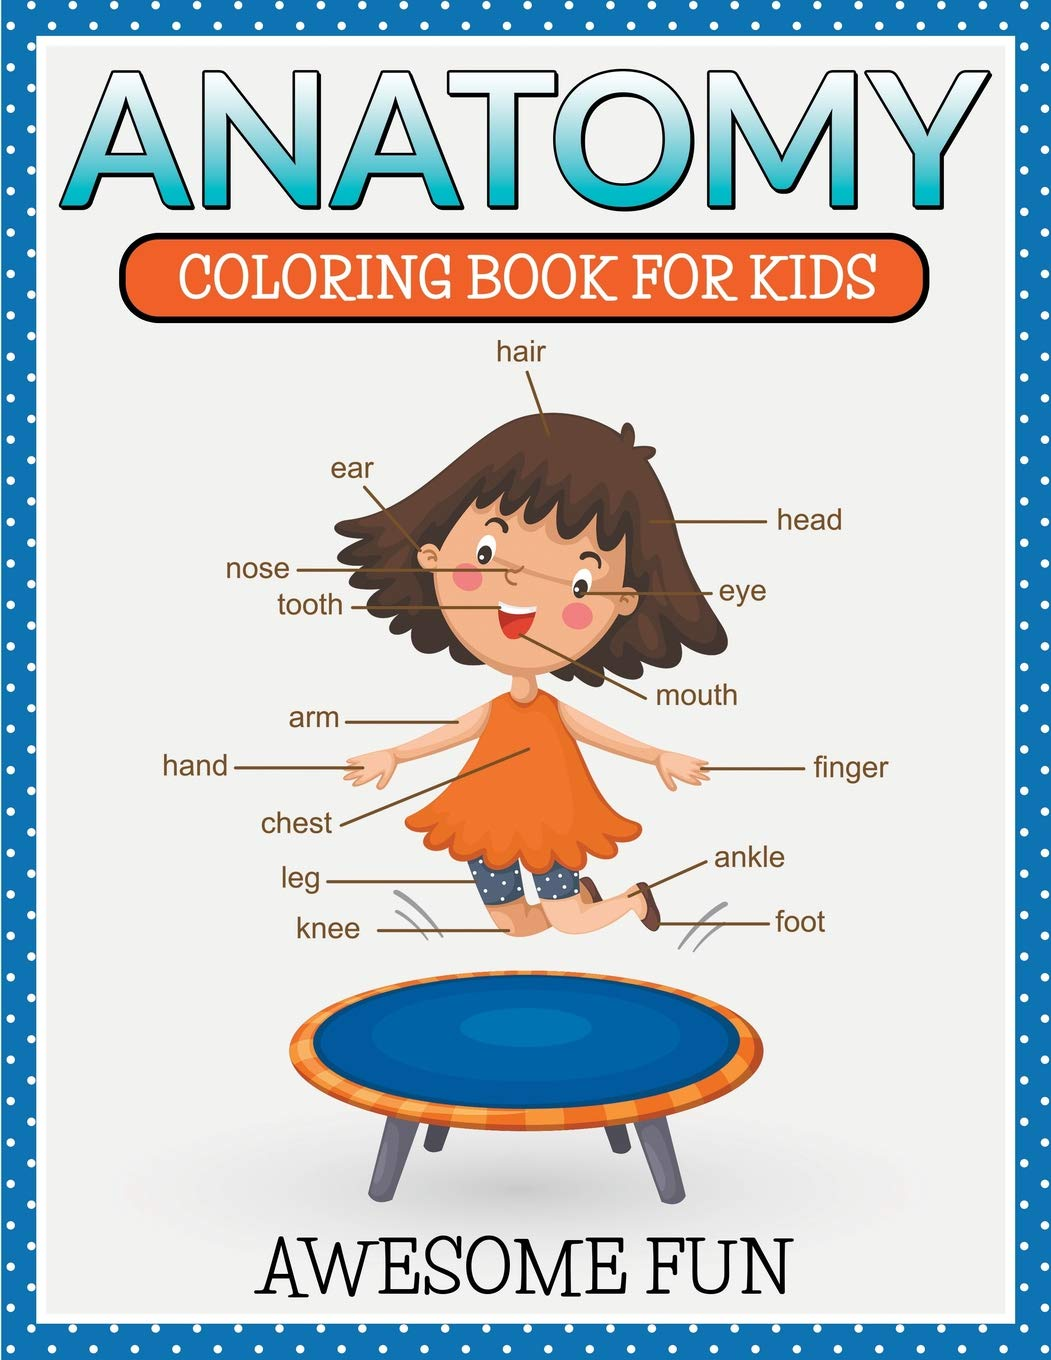 Anatomy Coloring Book For Kids Awesome Fun Speedy Publishing Llc